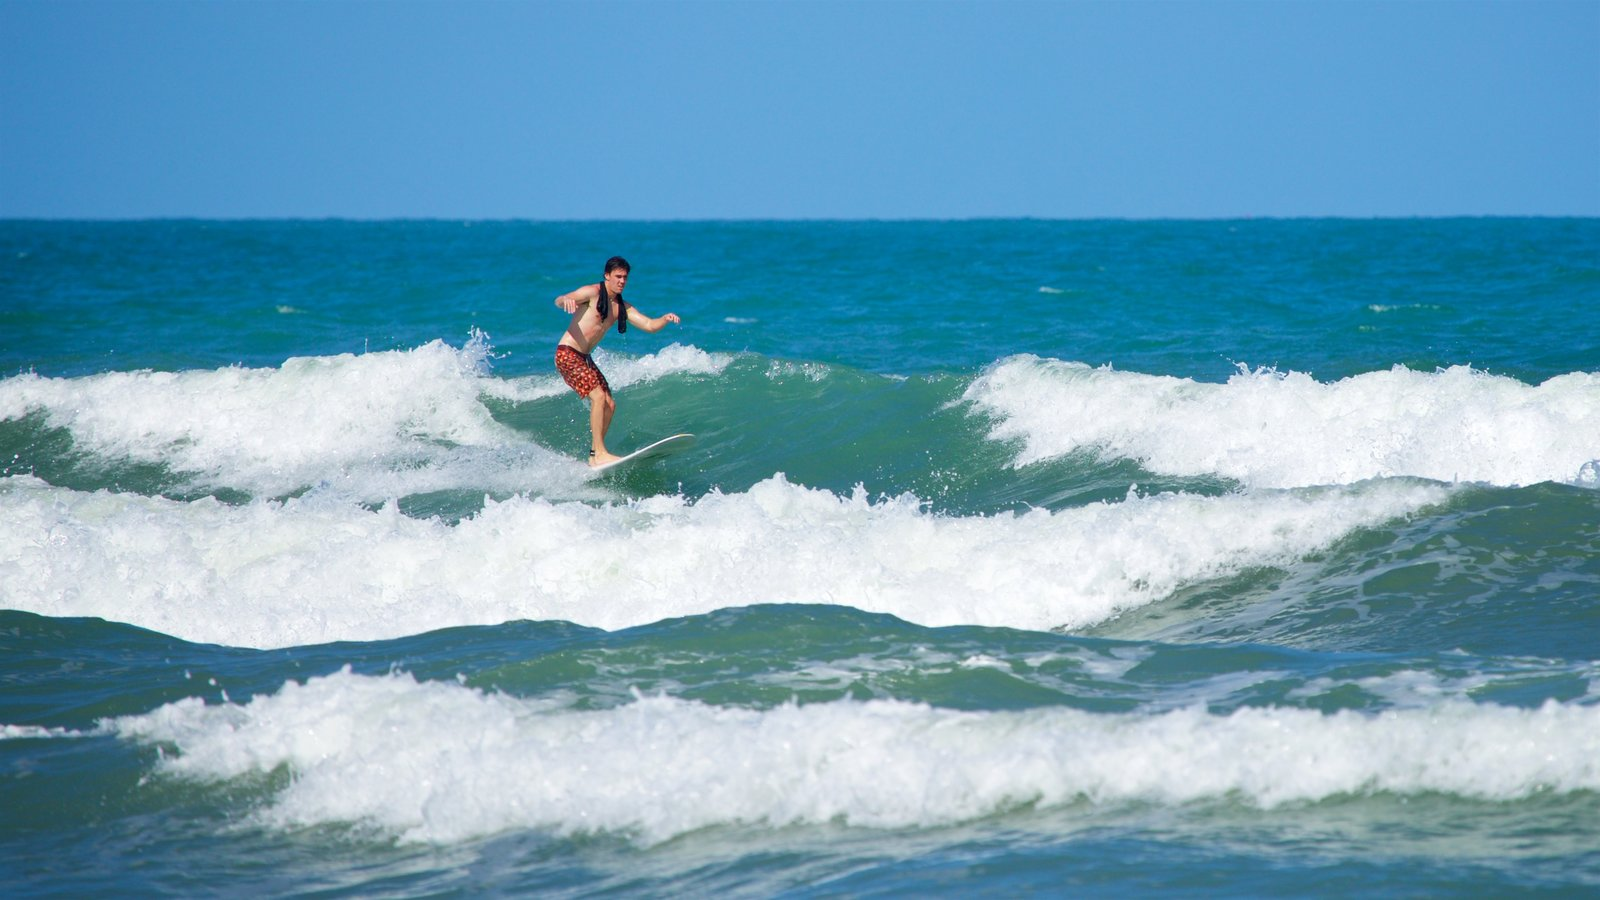 Cocoa Beach showing surfing, general coastal views and waves